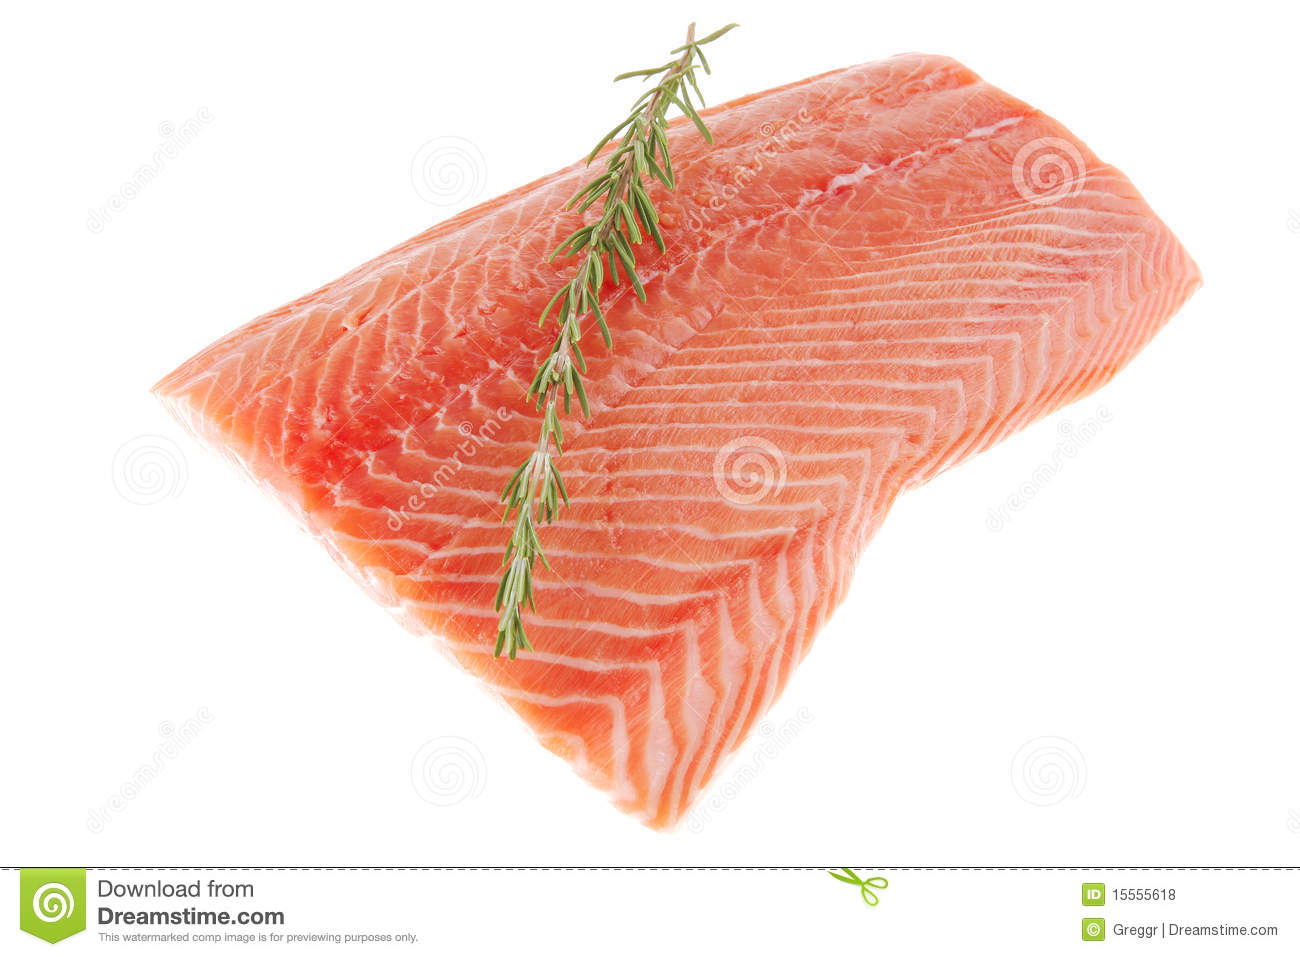 how to cook big pieces of fish